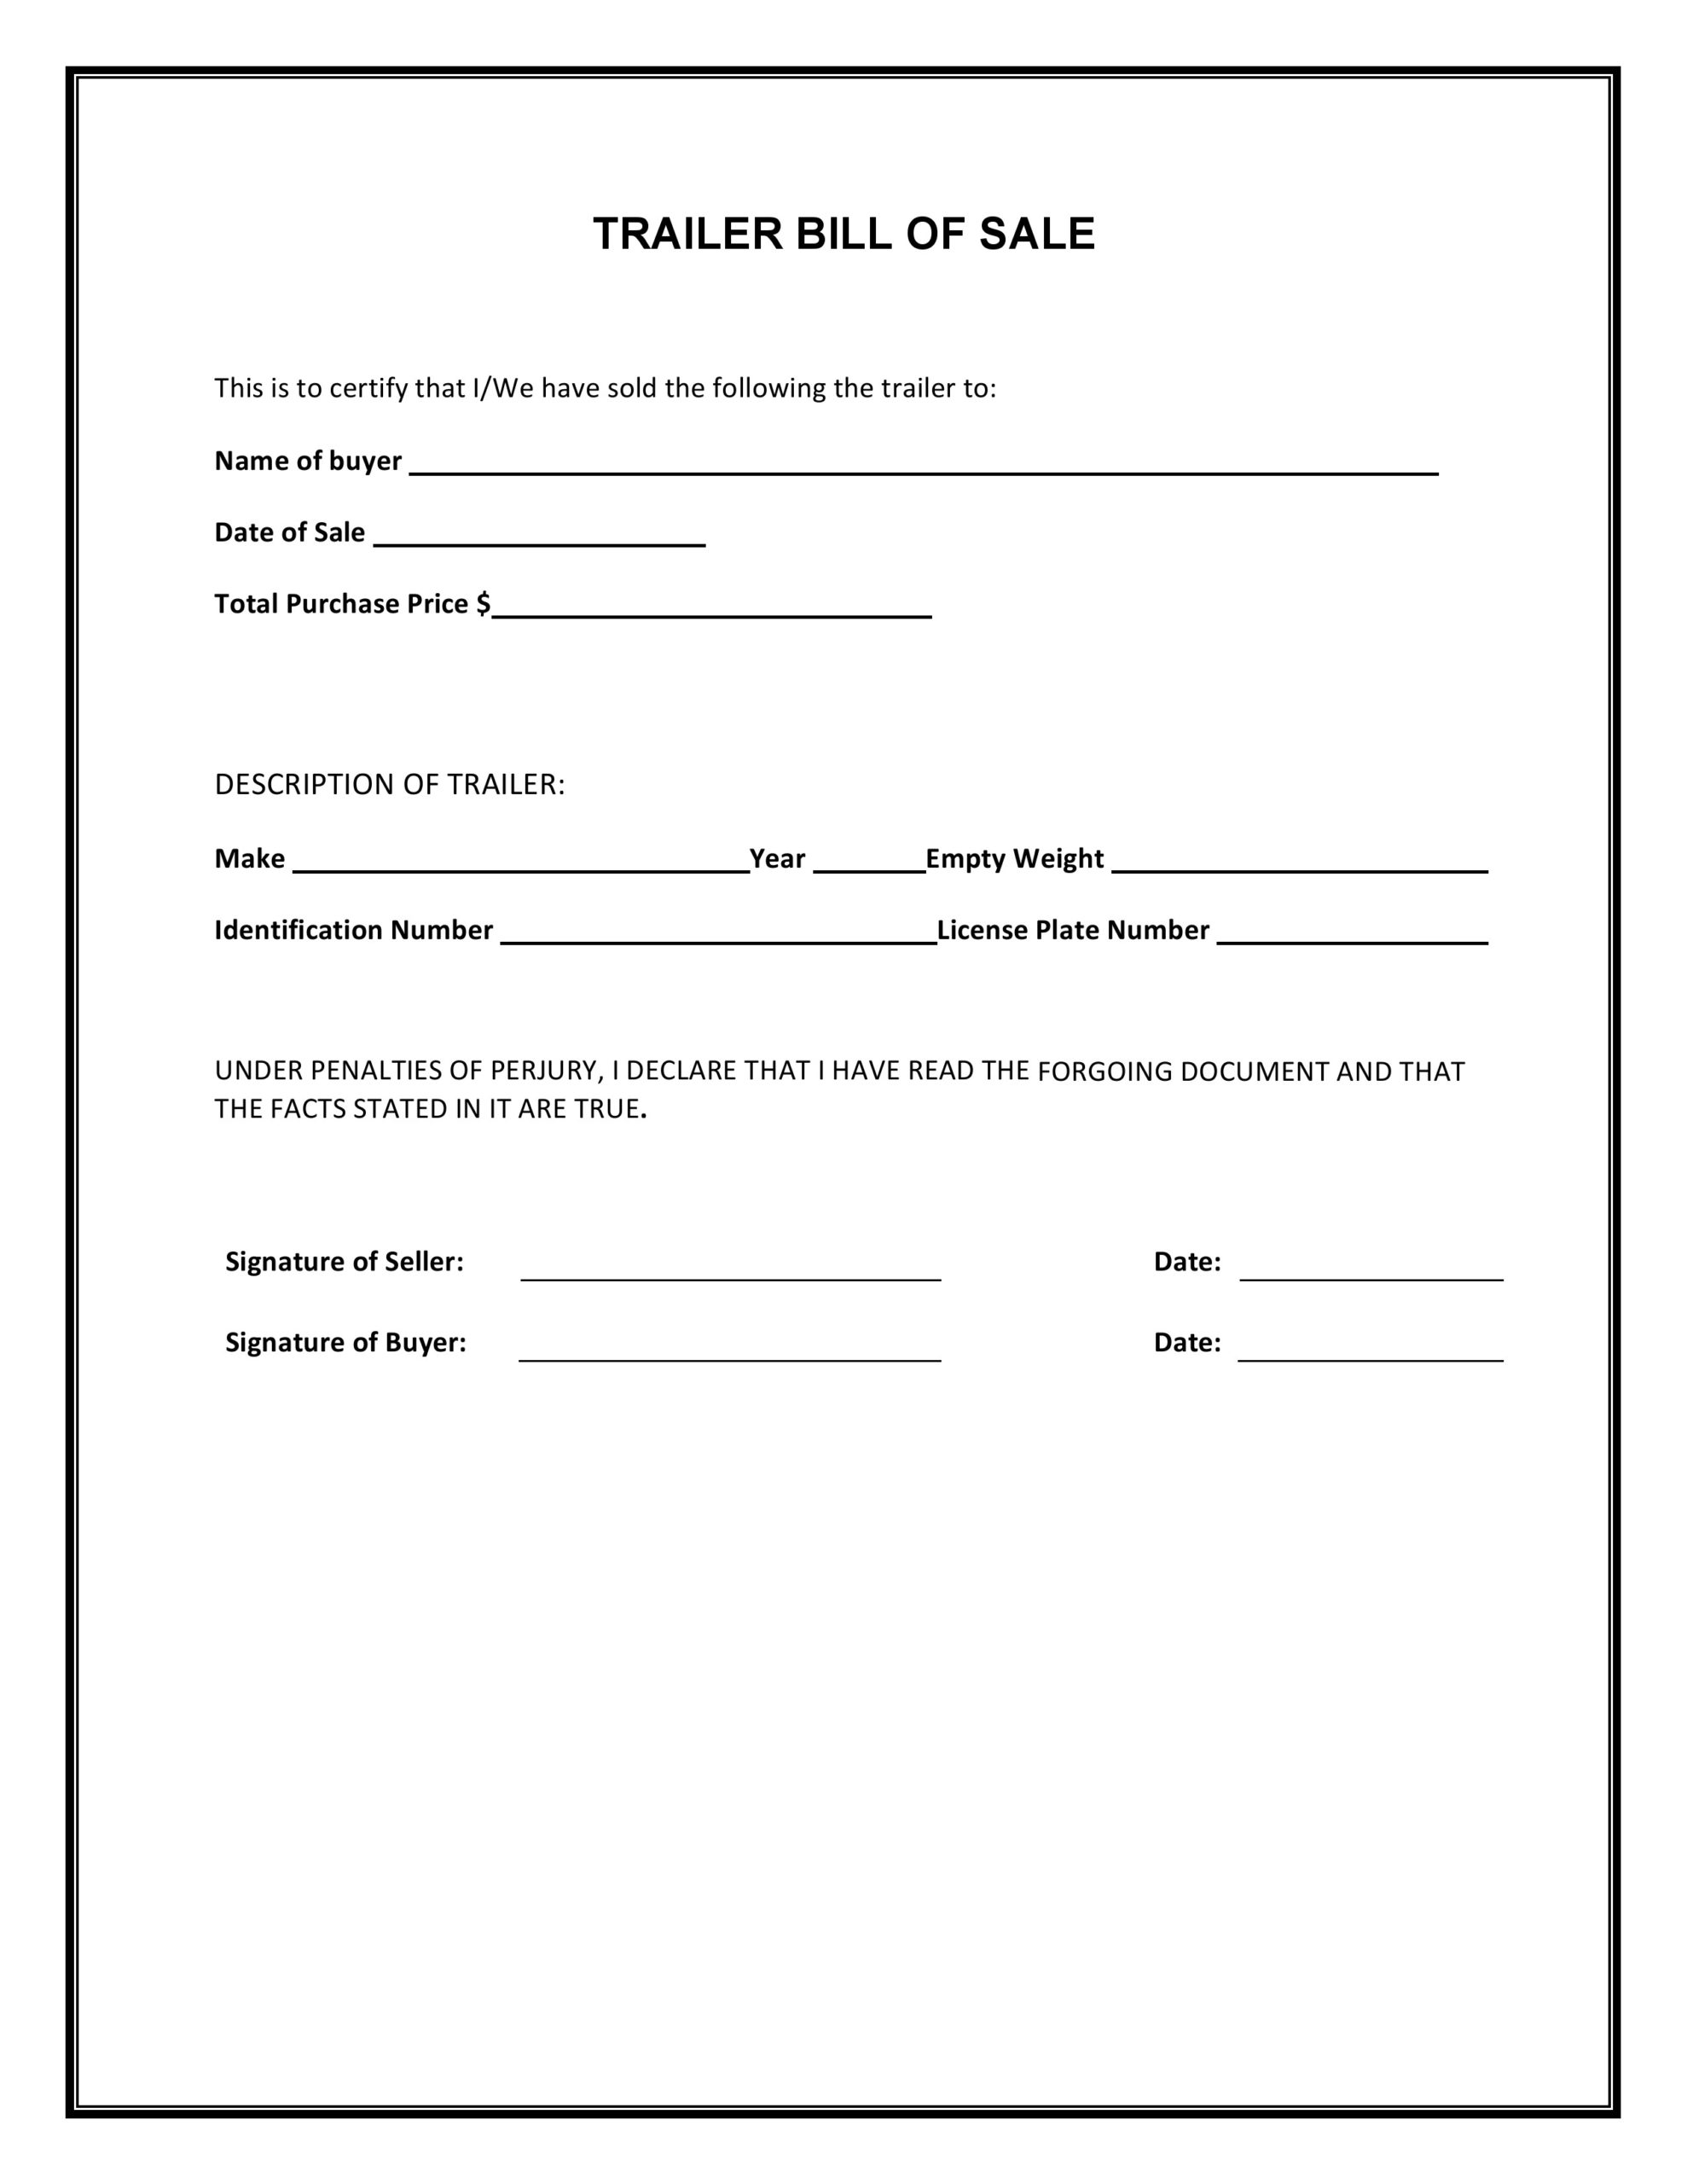 Free Trailer Bill Of Sale Form   Pdf   Word   Do It Yourself